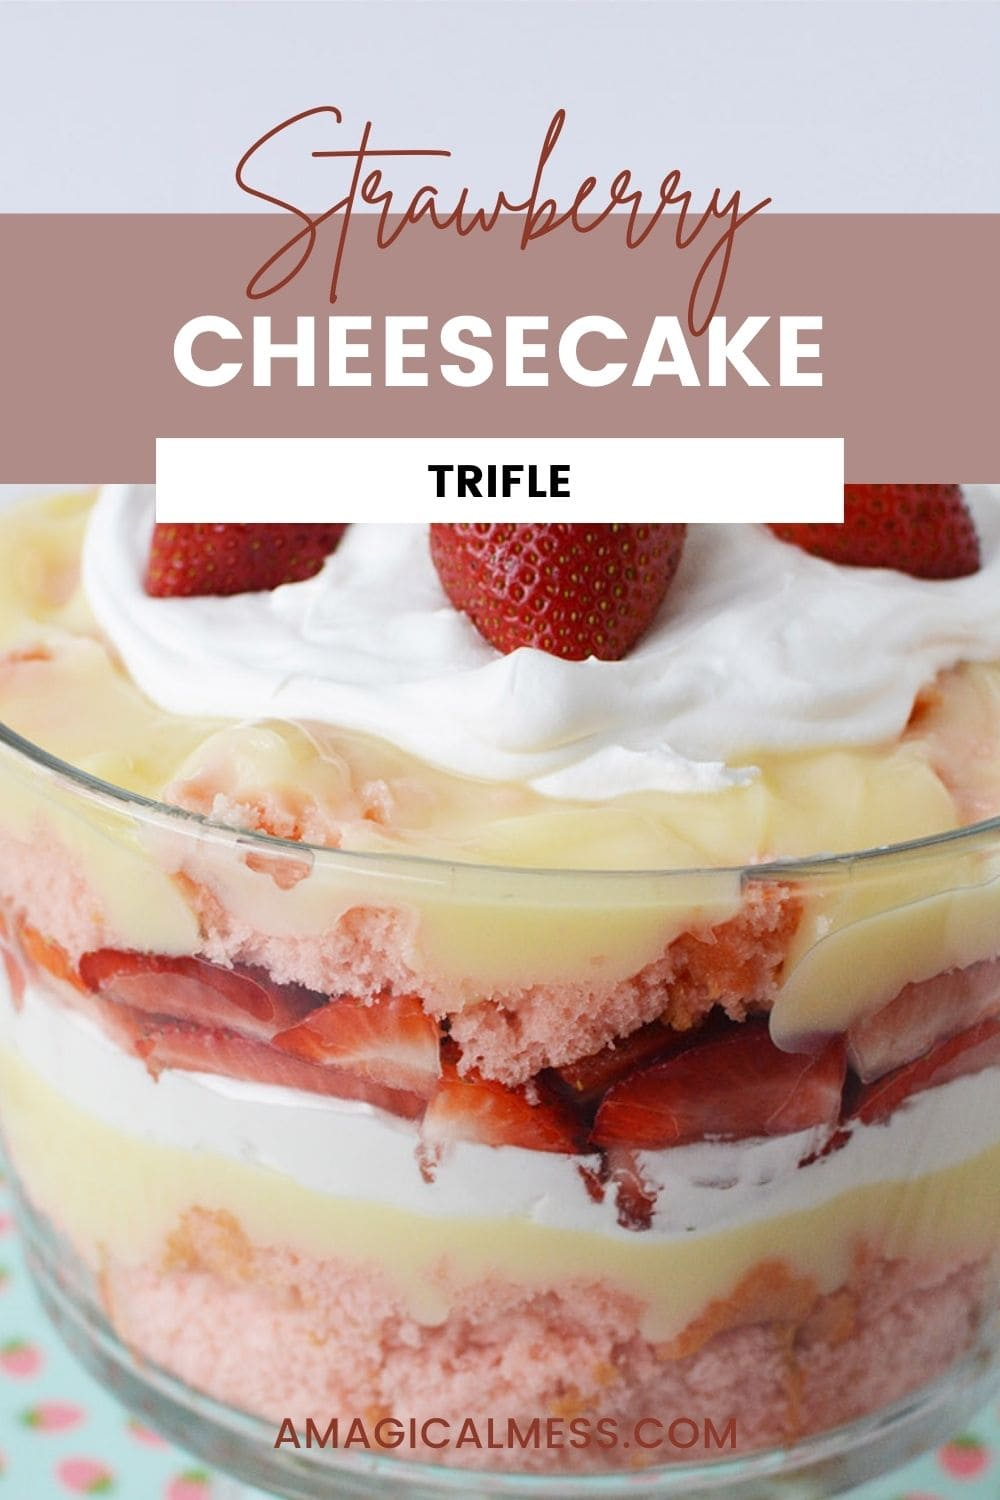 a trifle bowl filled with cake, strawberries, pudding, and whipped cream